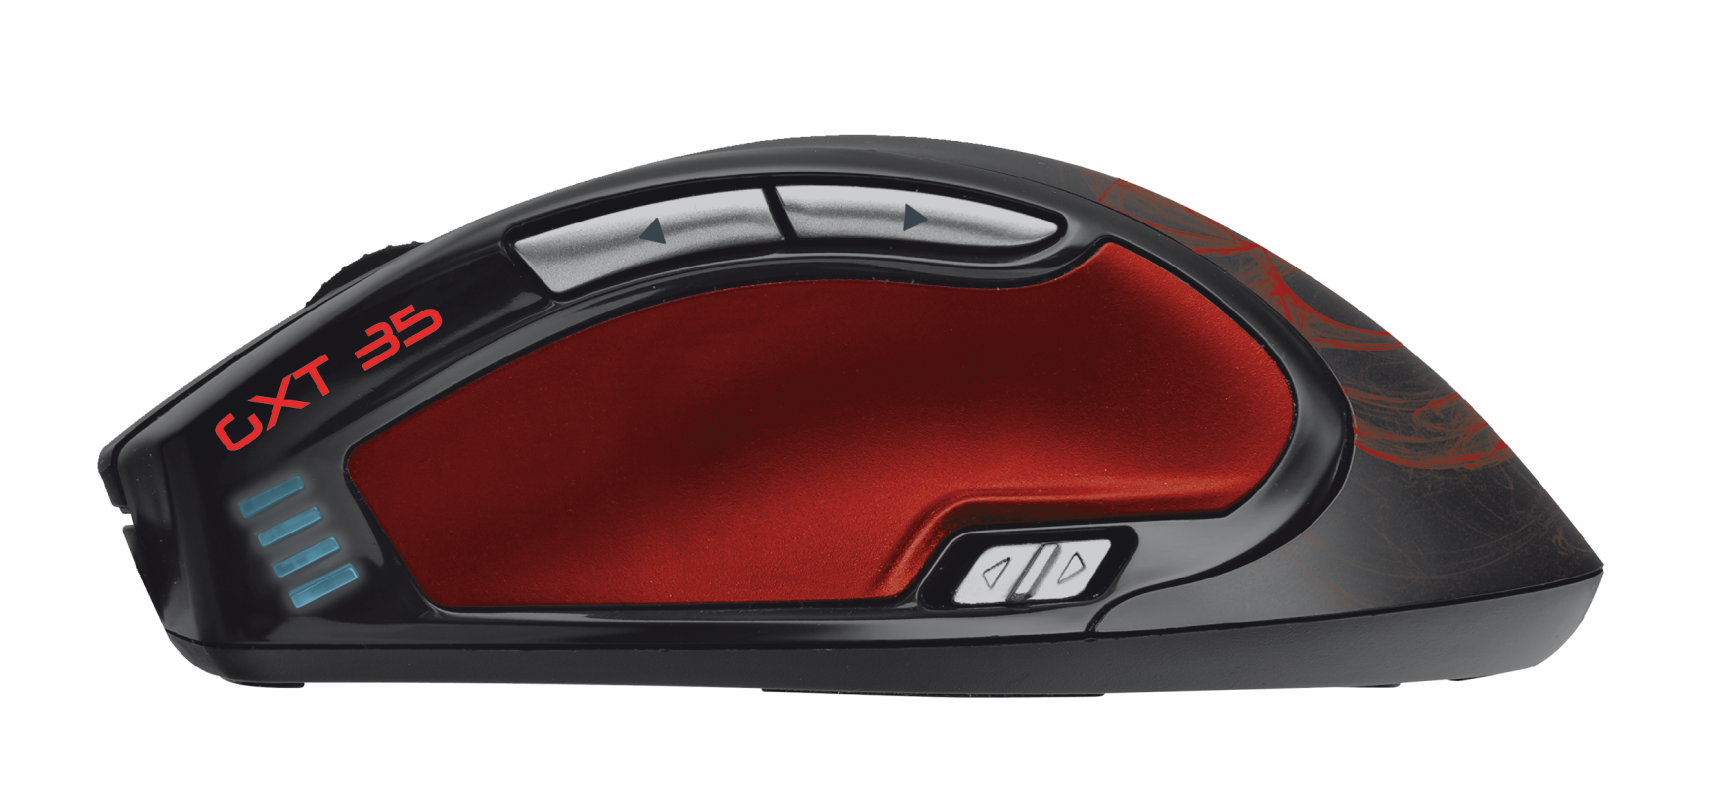 GXT 35 Wireless Laser Gaming Mouse-Side